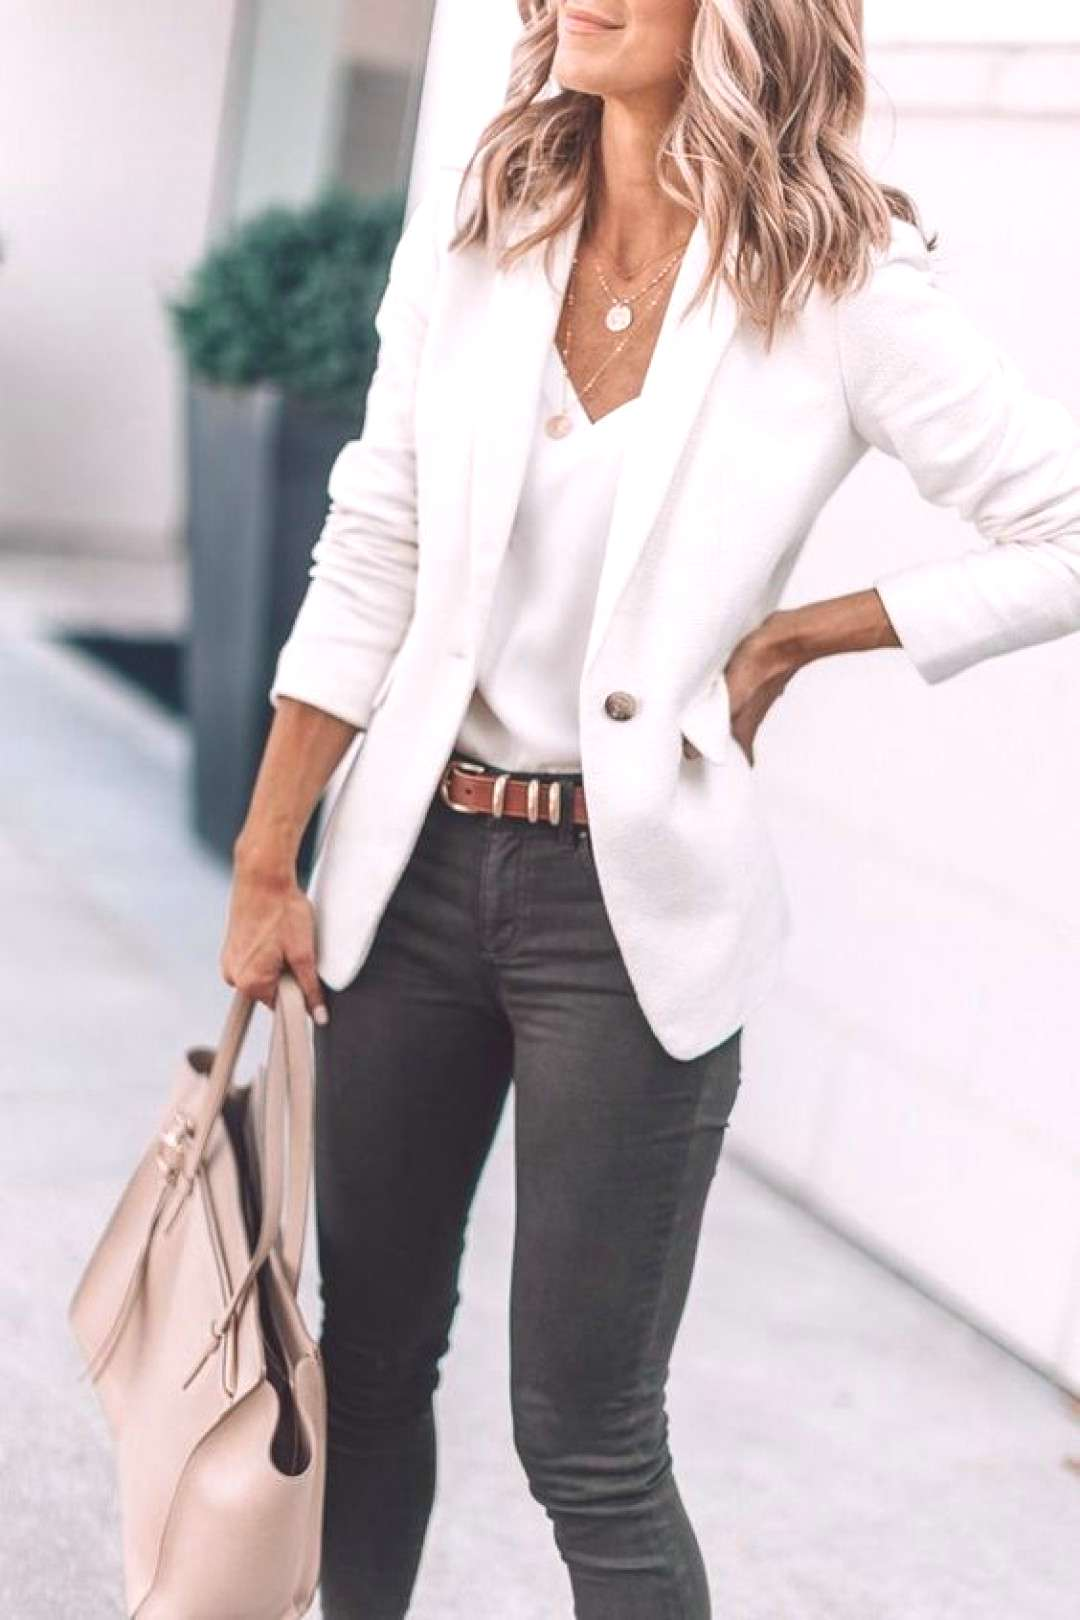 25 Amazing Work Outfit For Women In This Spring - Bafbouf